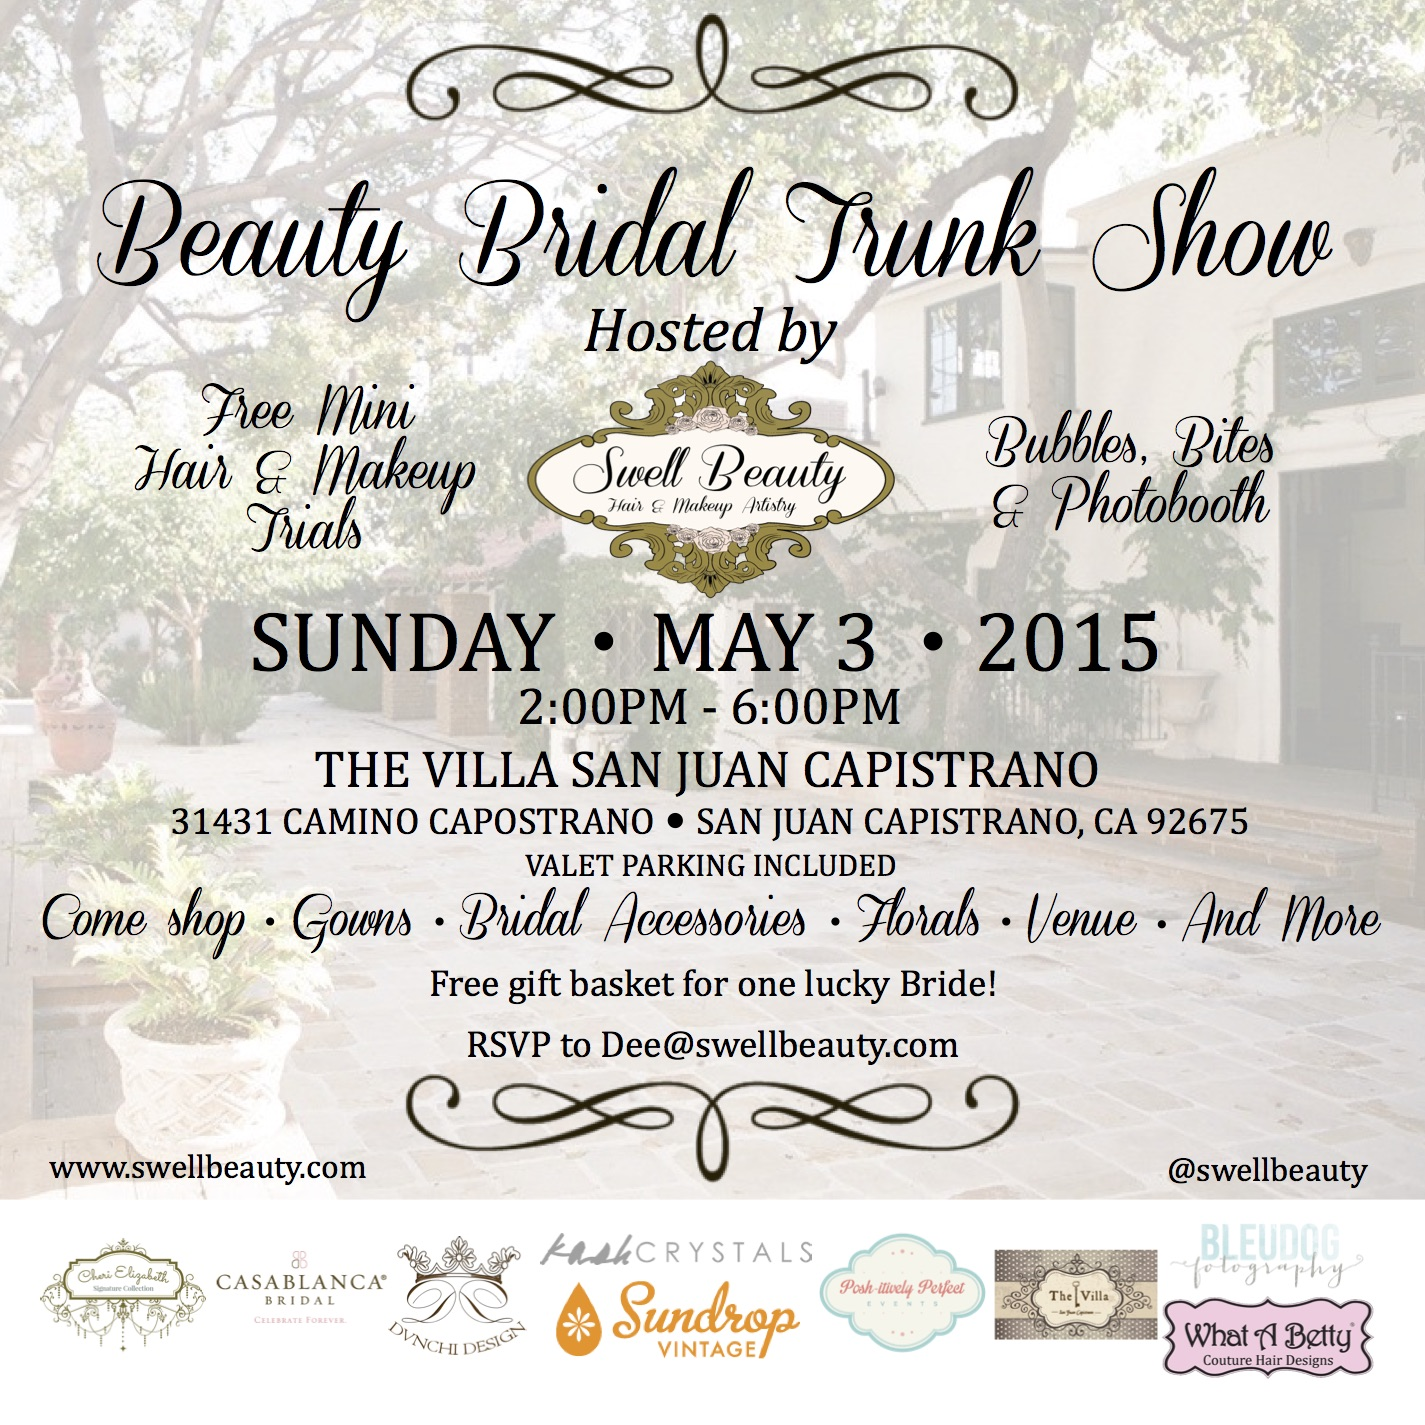 BEAUTY BRIDAL TRUNKSHOW